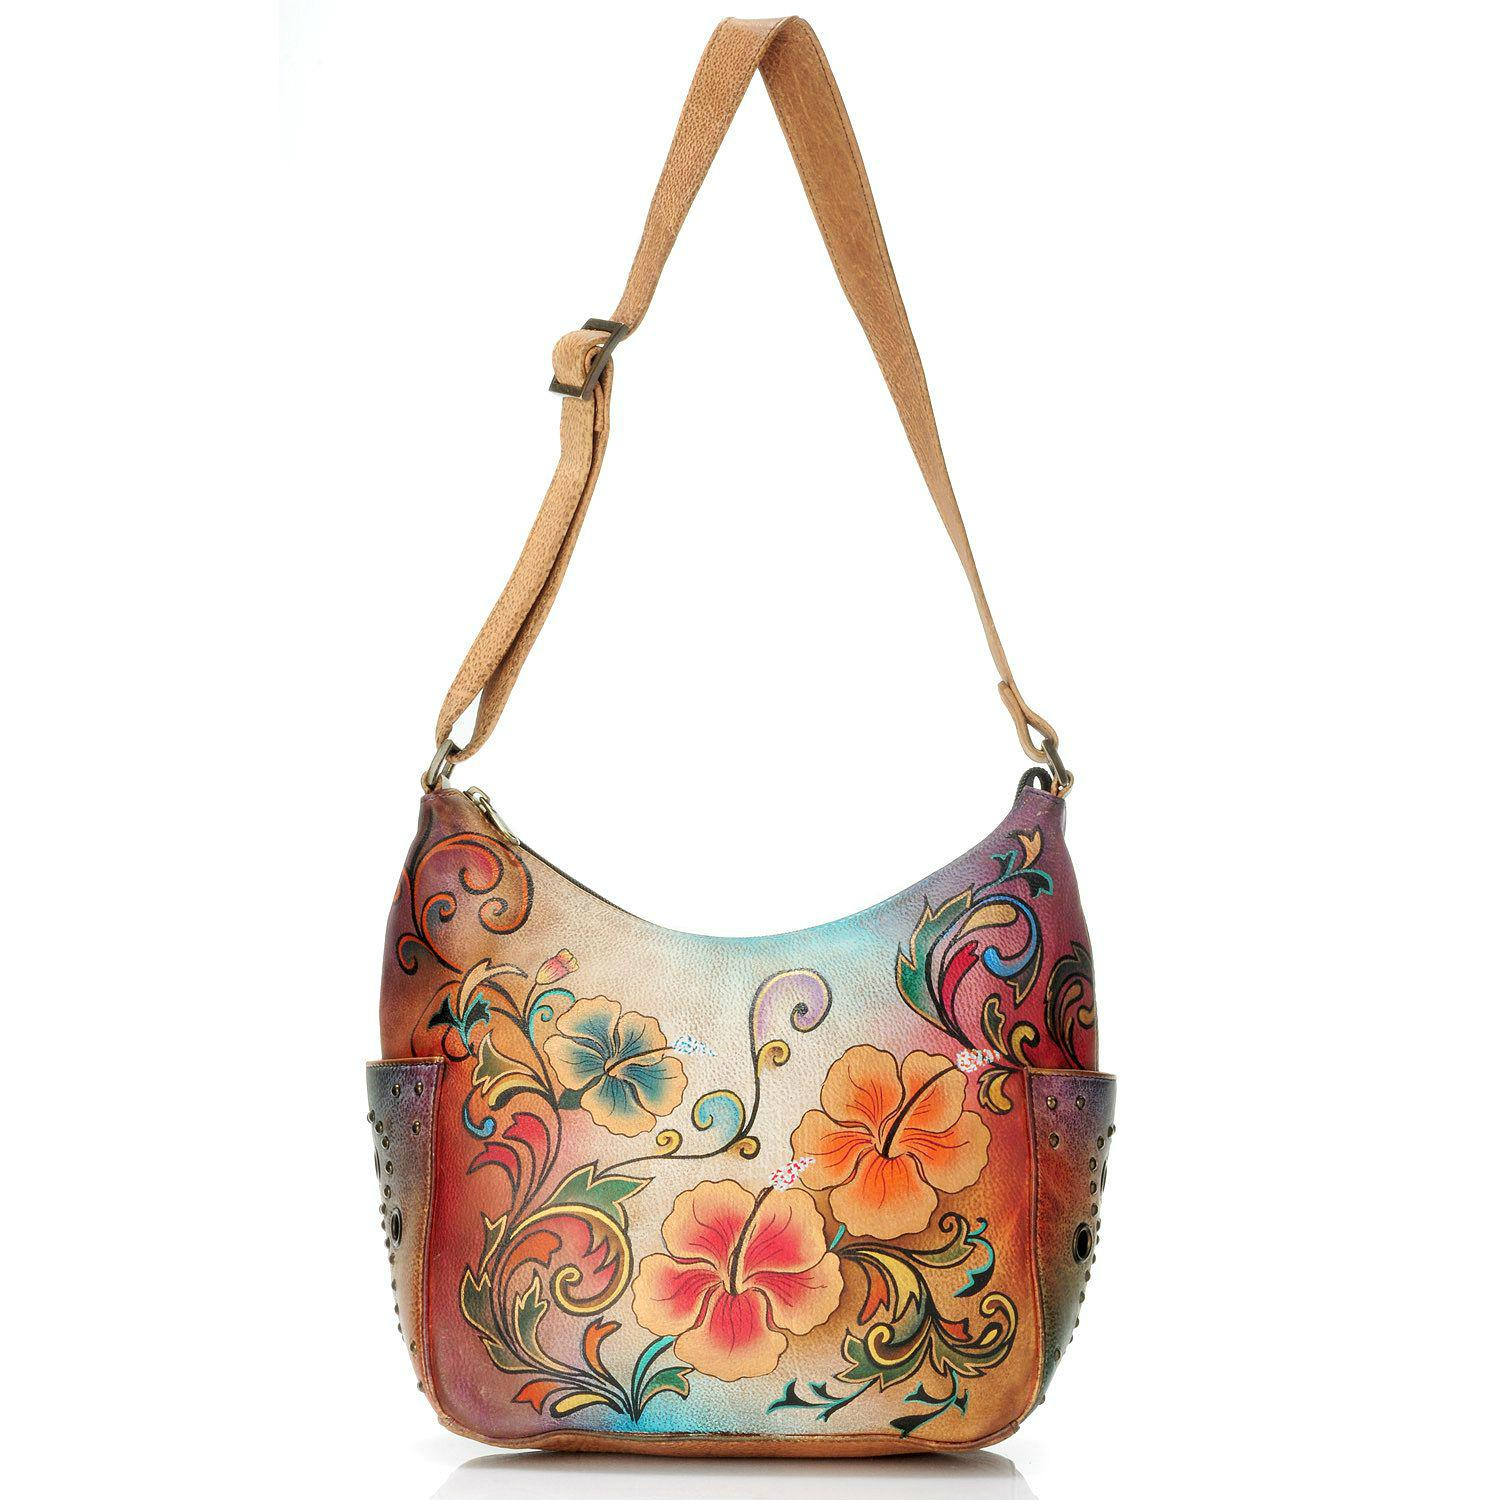 Anuschka Hobo with Side Pockets in Henna Floral